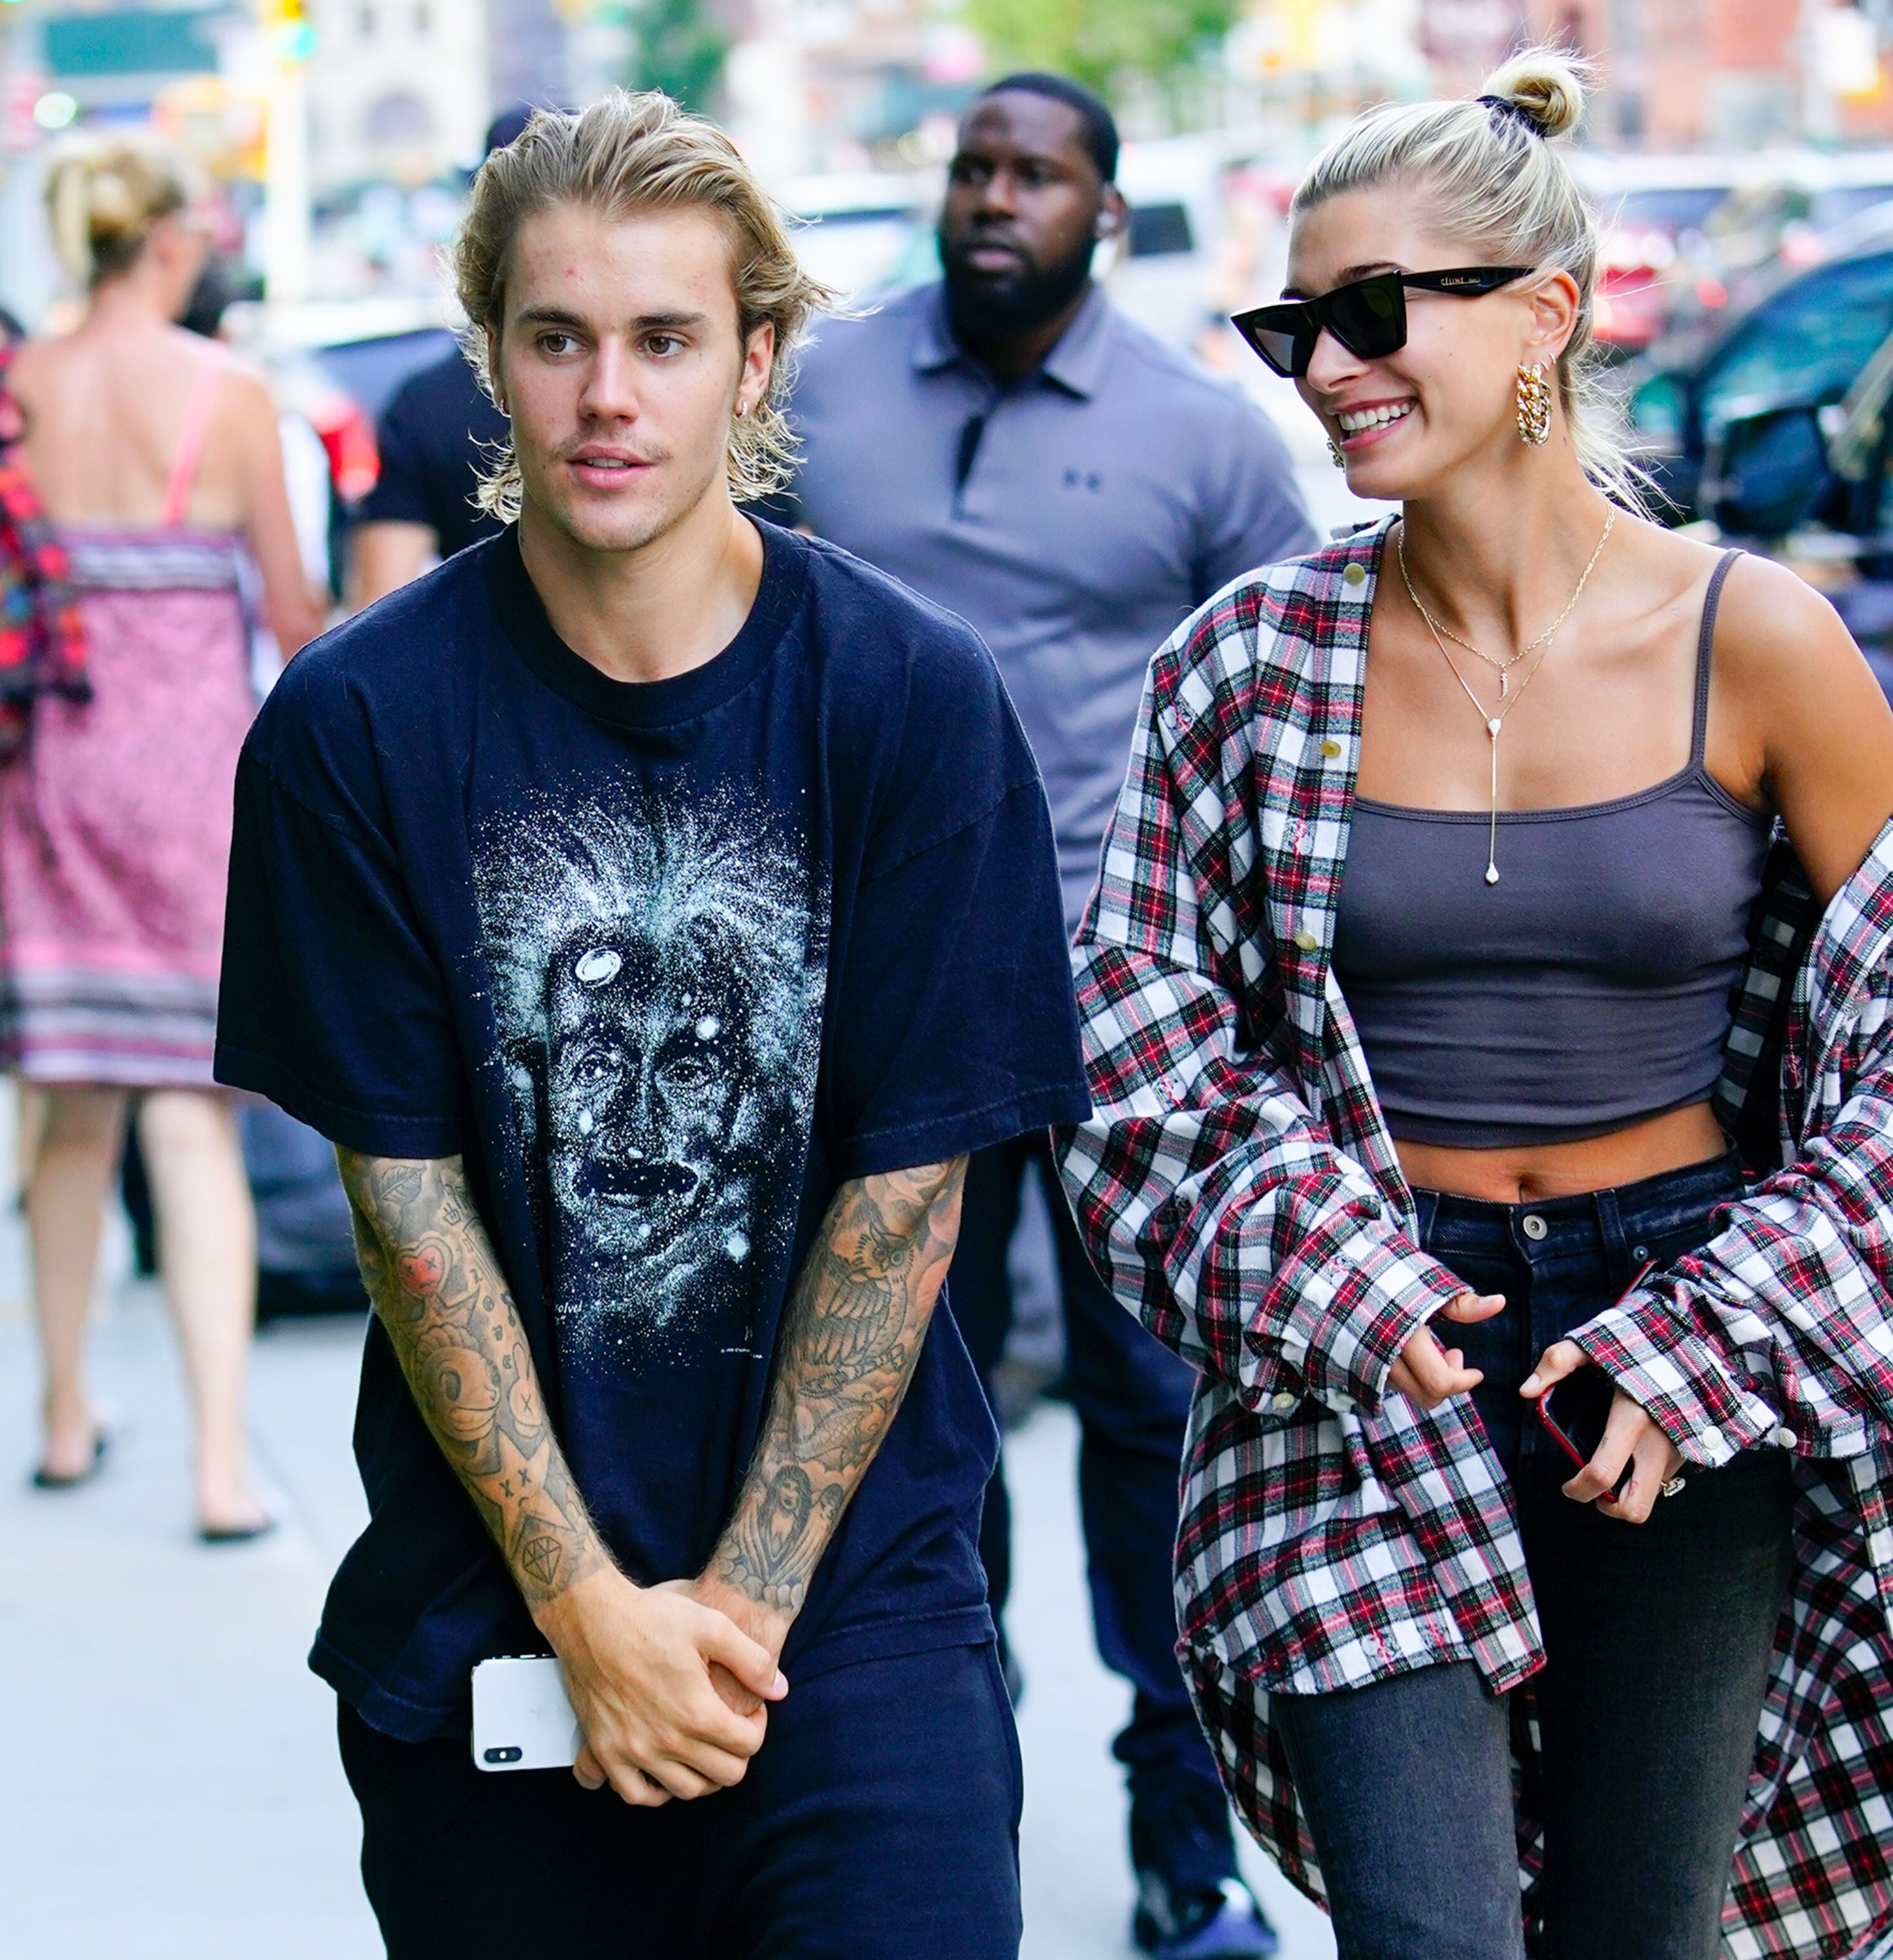 Justin Bieber Cried in Public Because of Hailey Baldwin Relationship     Justin Bieber Cried in Public Because of Hailey Baldwin Relationship   Why  Justin Broke Down